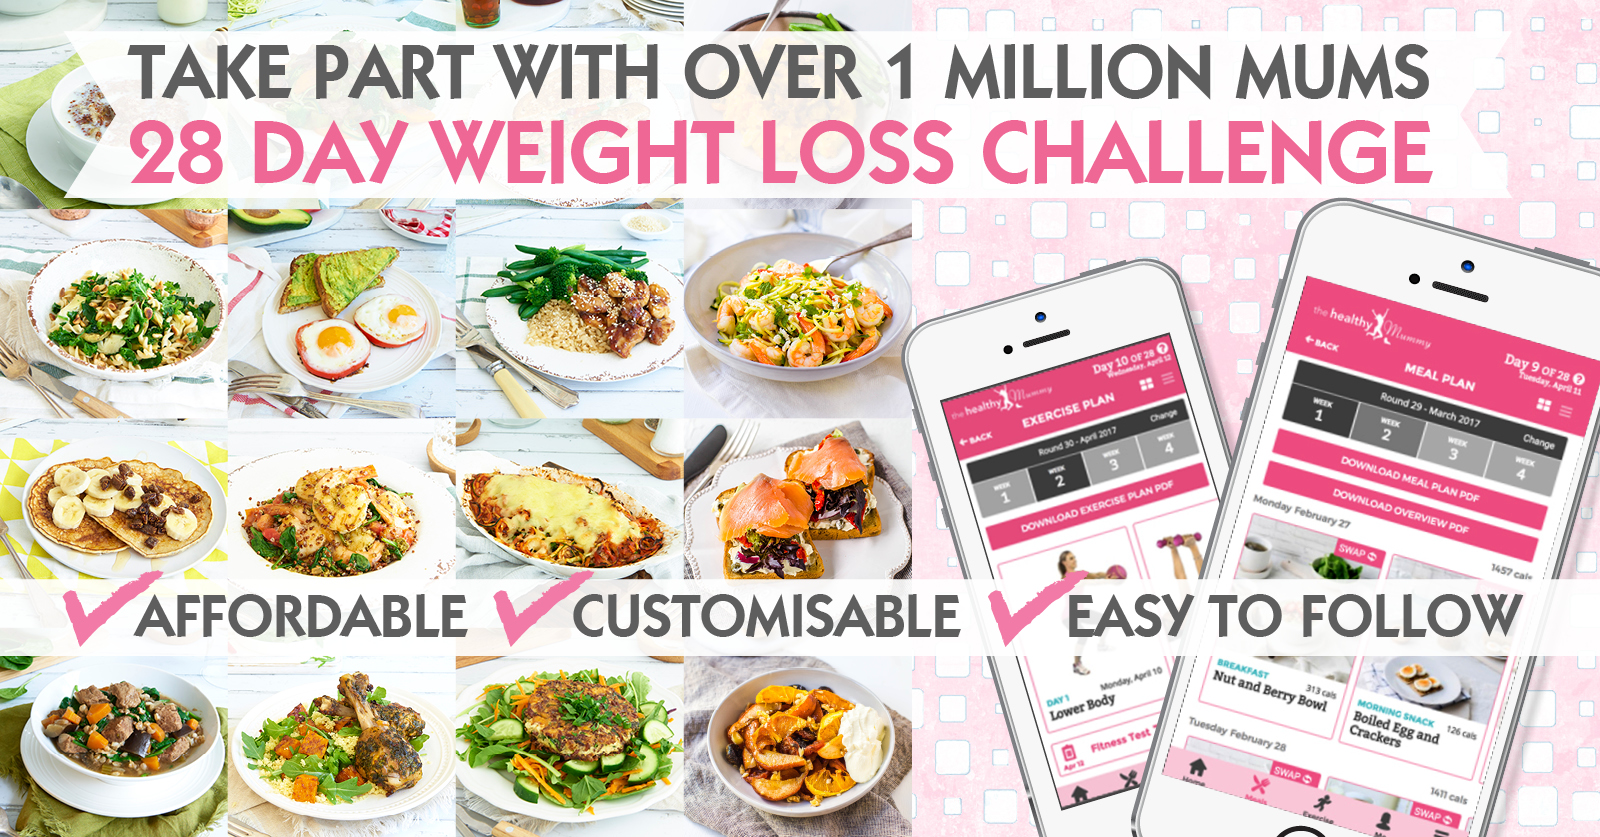 Get Access To Thousands Of Budget Friendly And Healthy Recipes On Our Challenge 1705 THM DB GENERIC CHALLENGE GRAFX The Mummys 28 Day Weight Loss